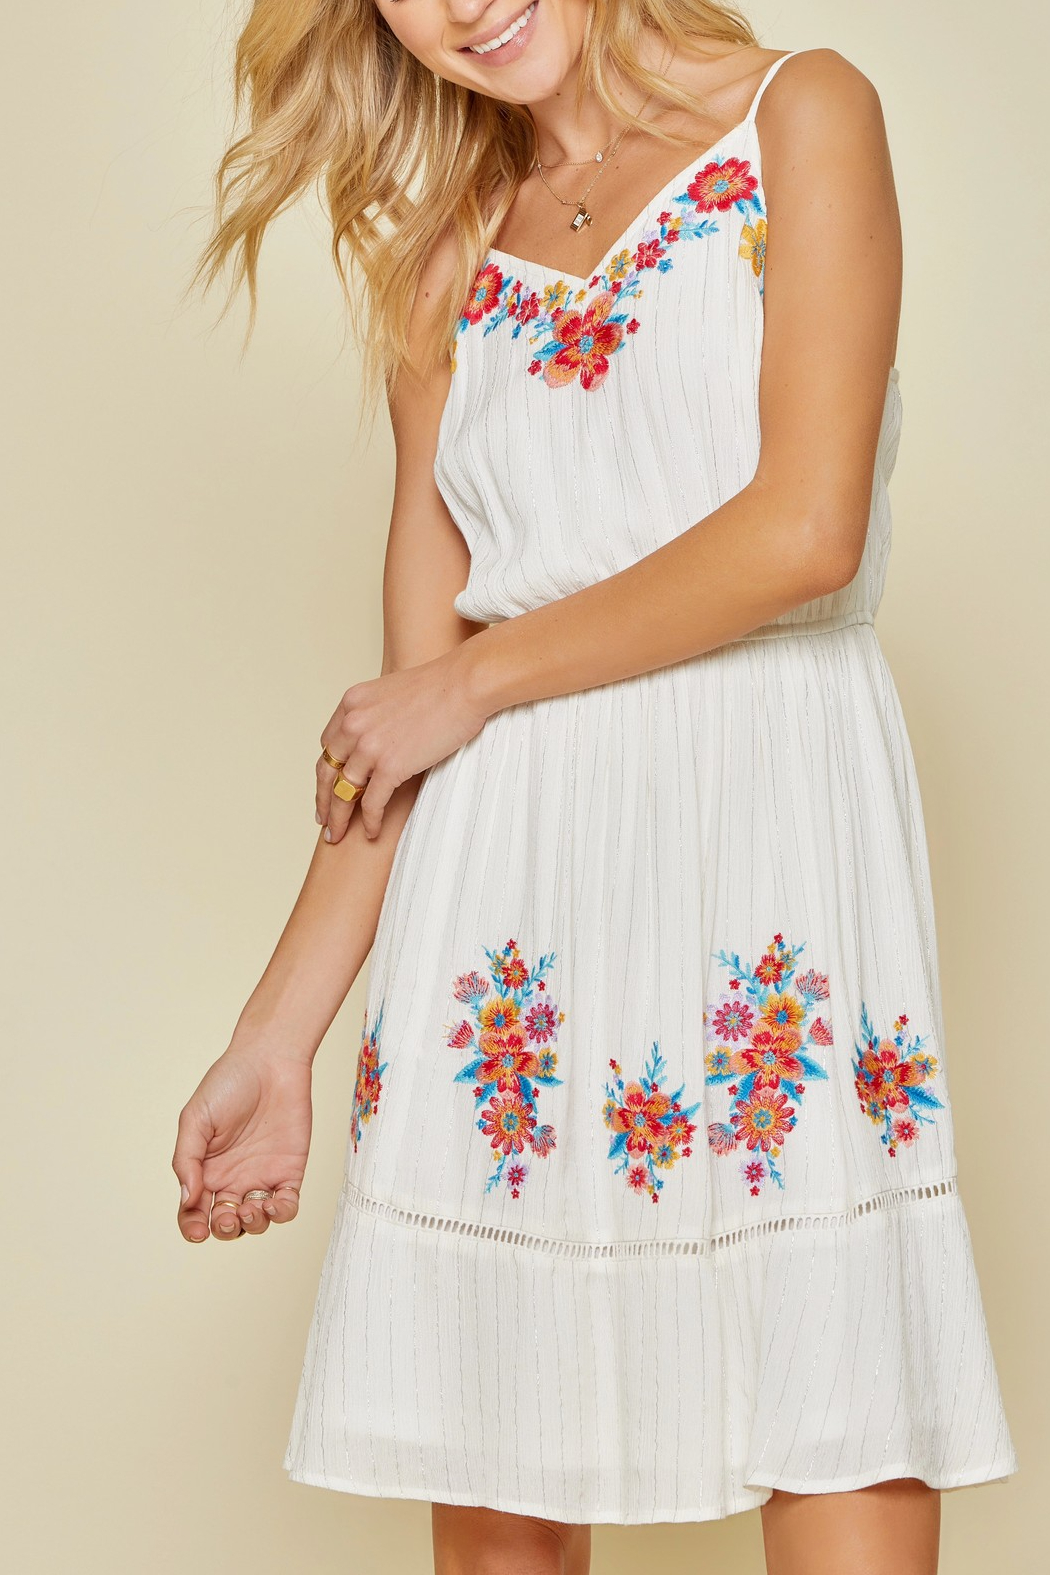 Savannah Jane Embroidered Floral Mini Dress - Side Cropped Image